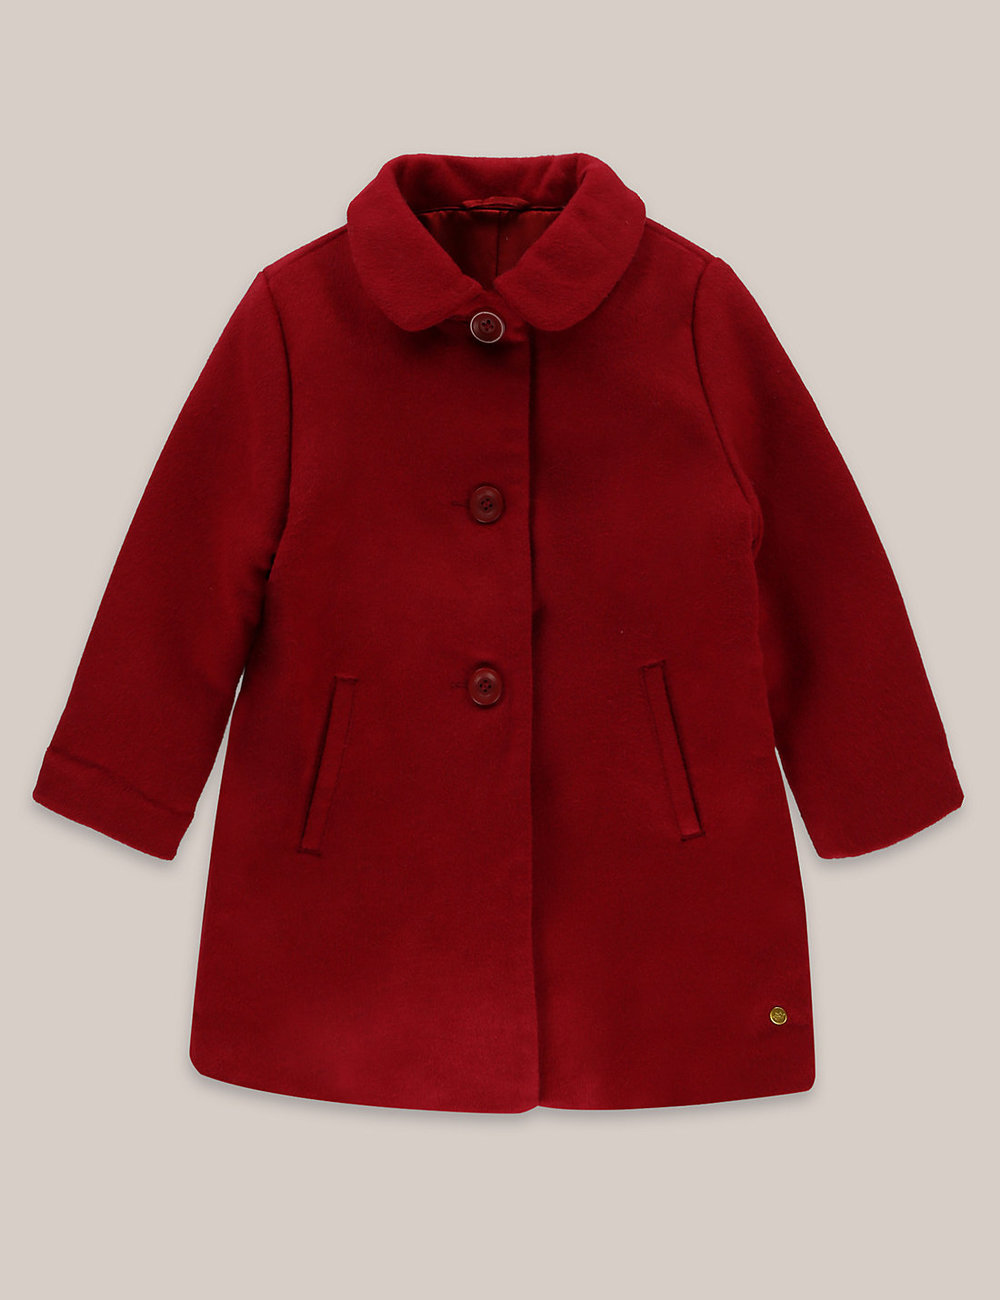 Red child's coat